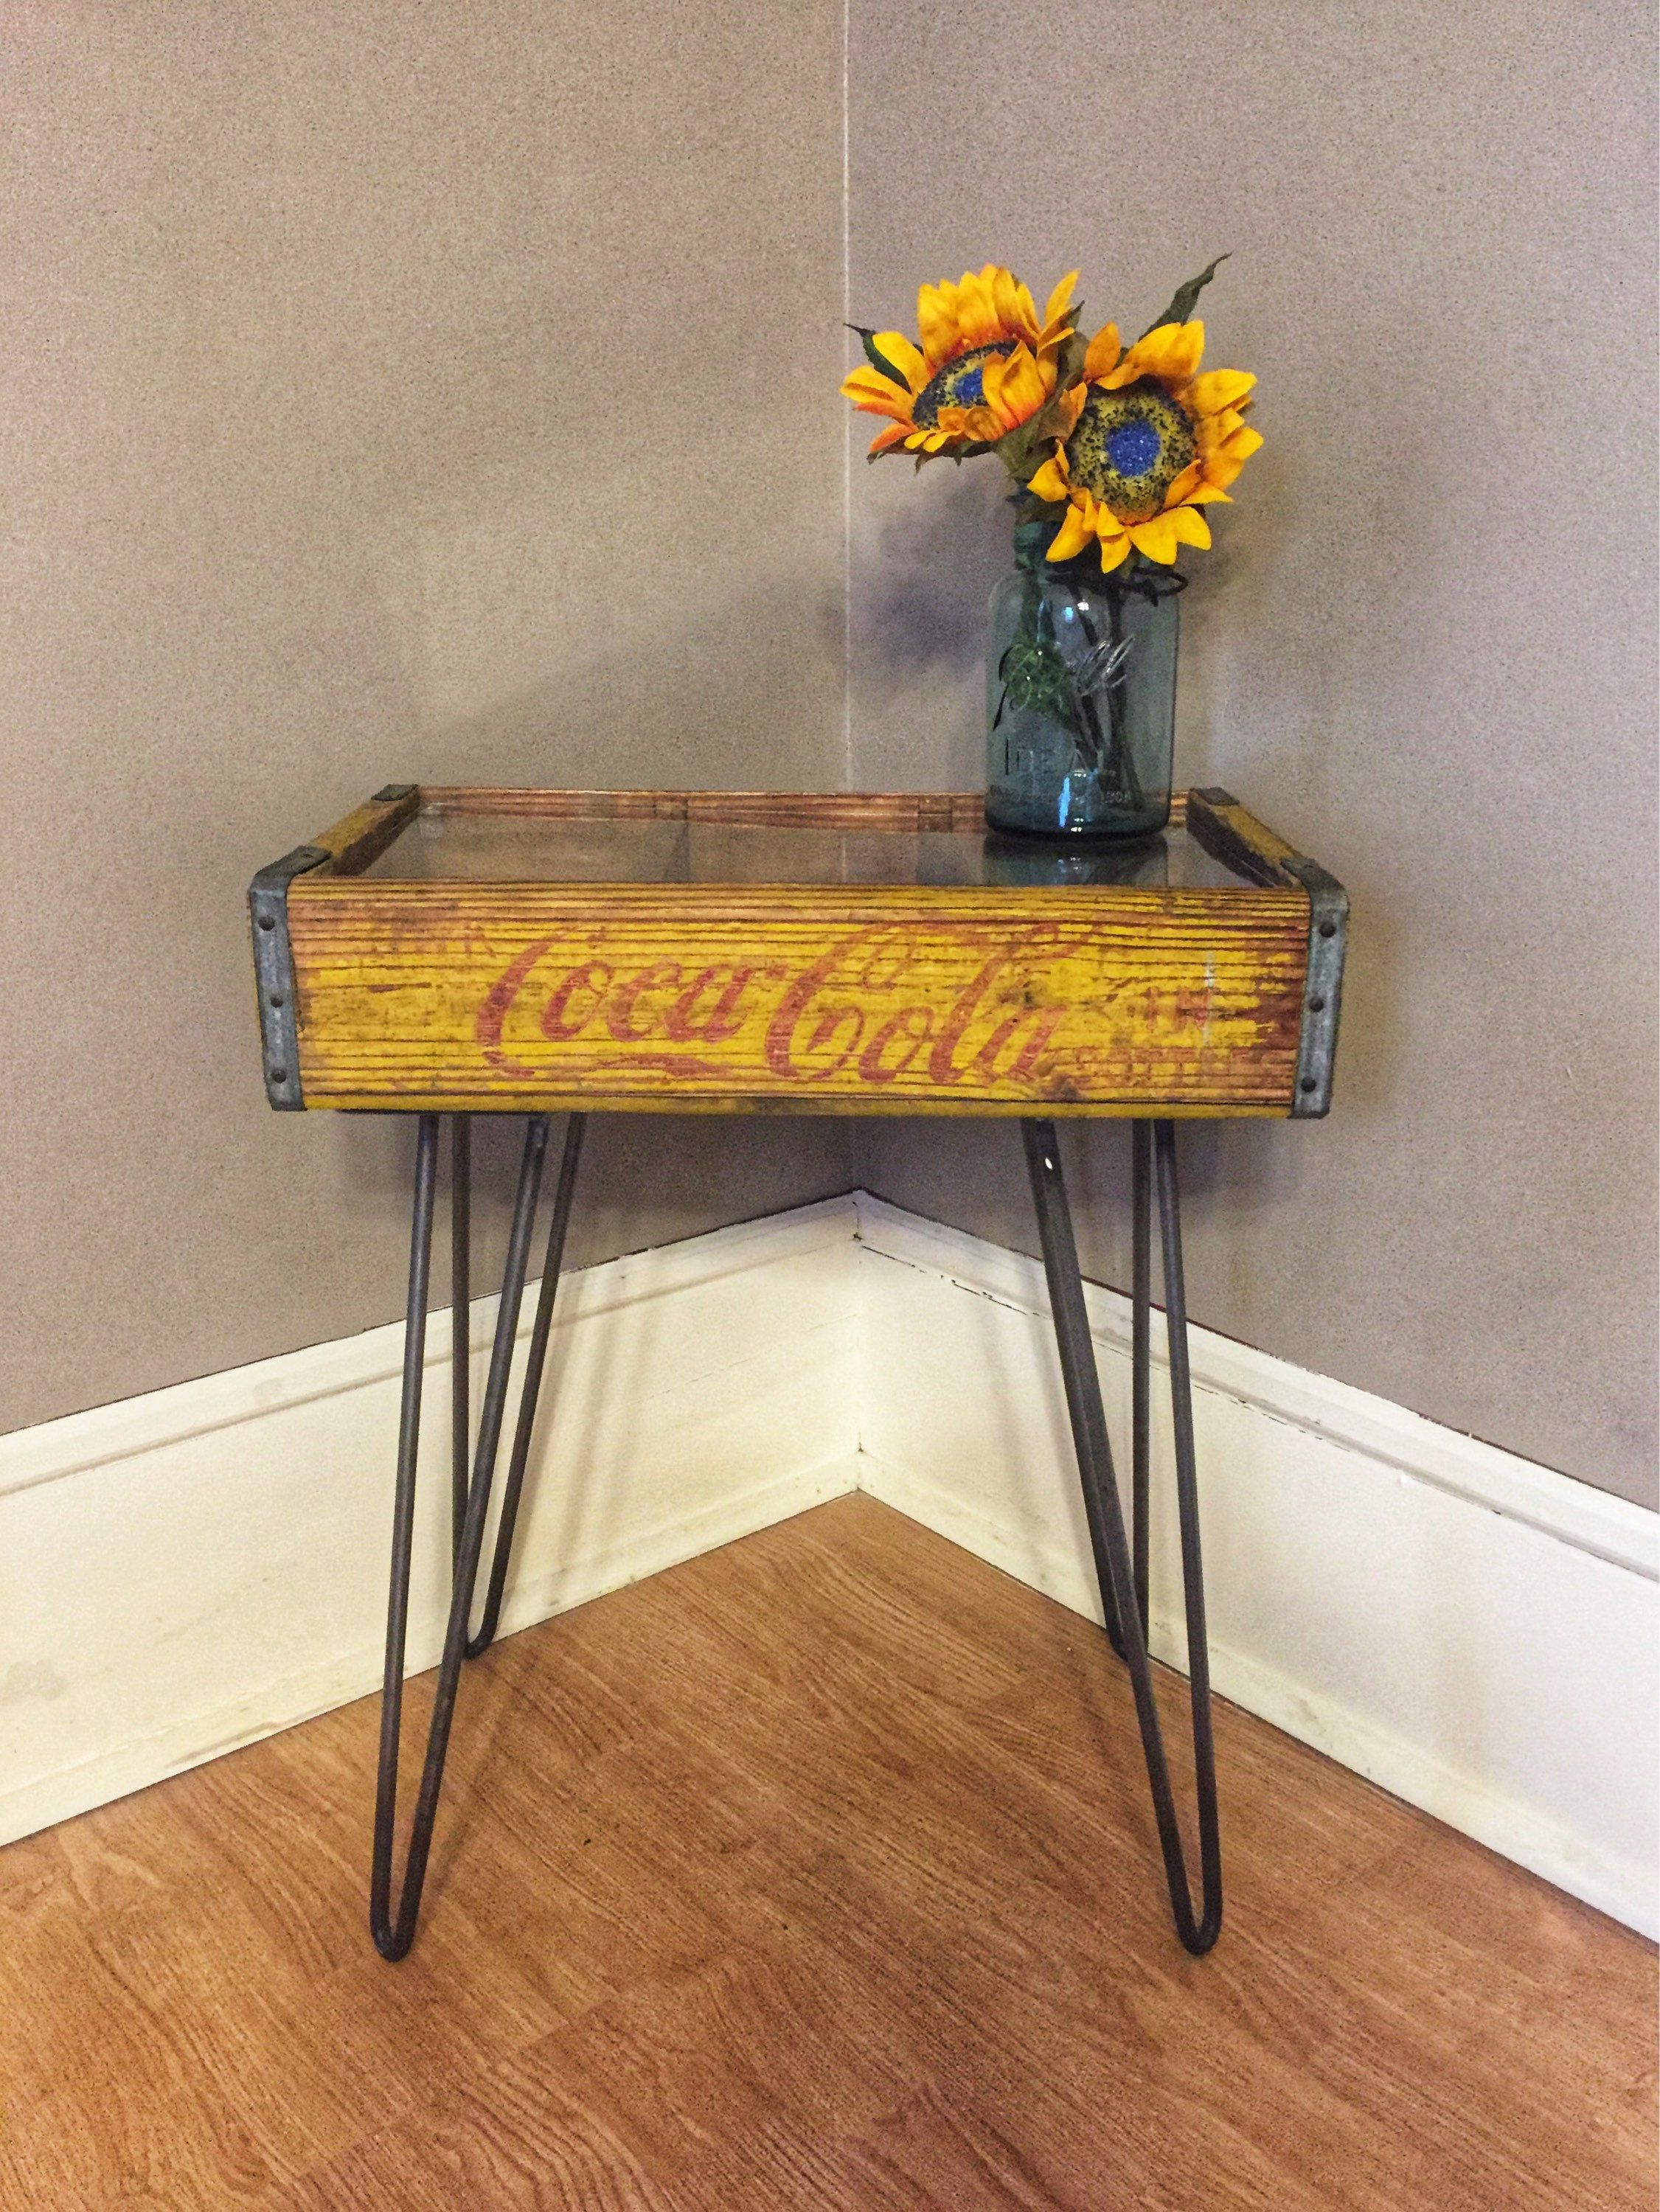 Upcycled reclaimed vintage yellow coca cola soda crate end table